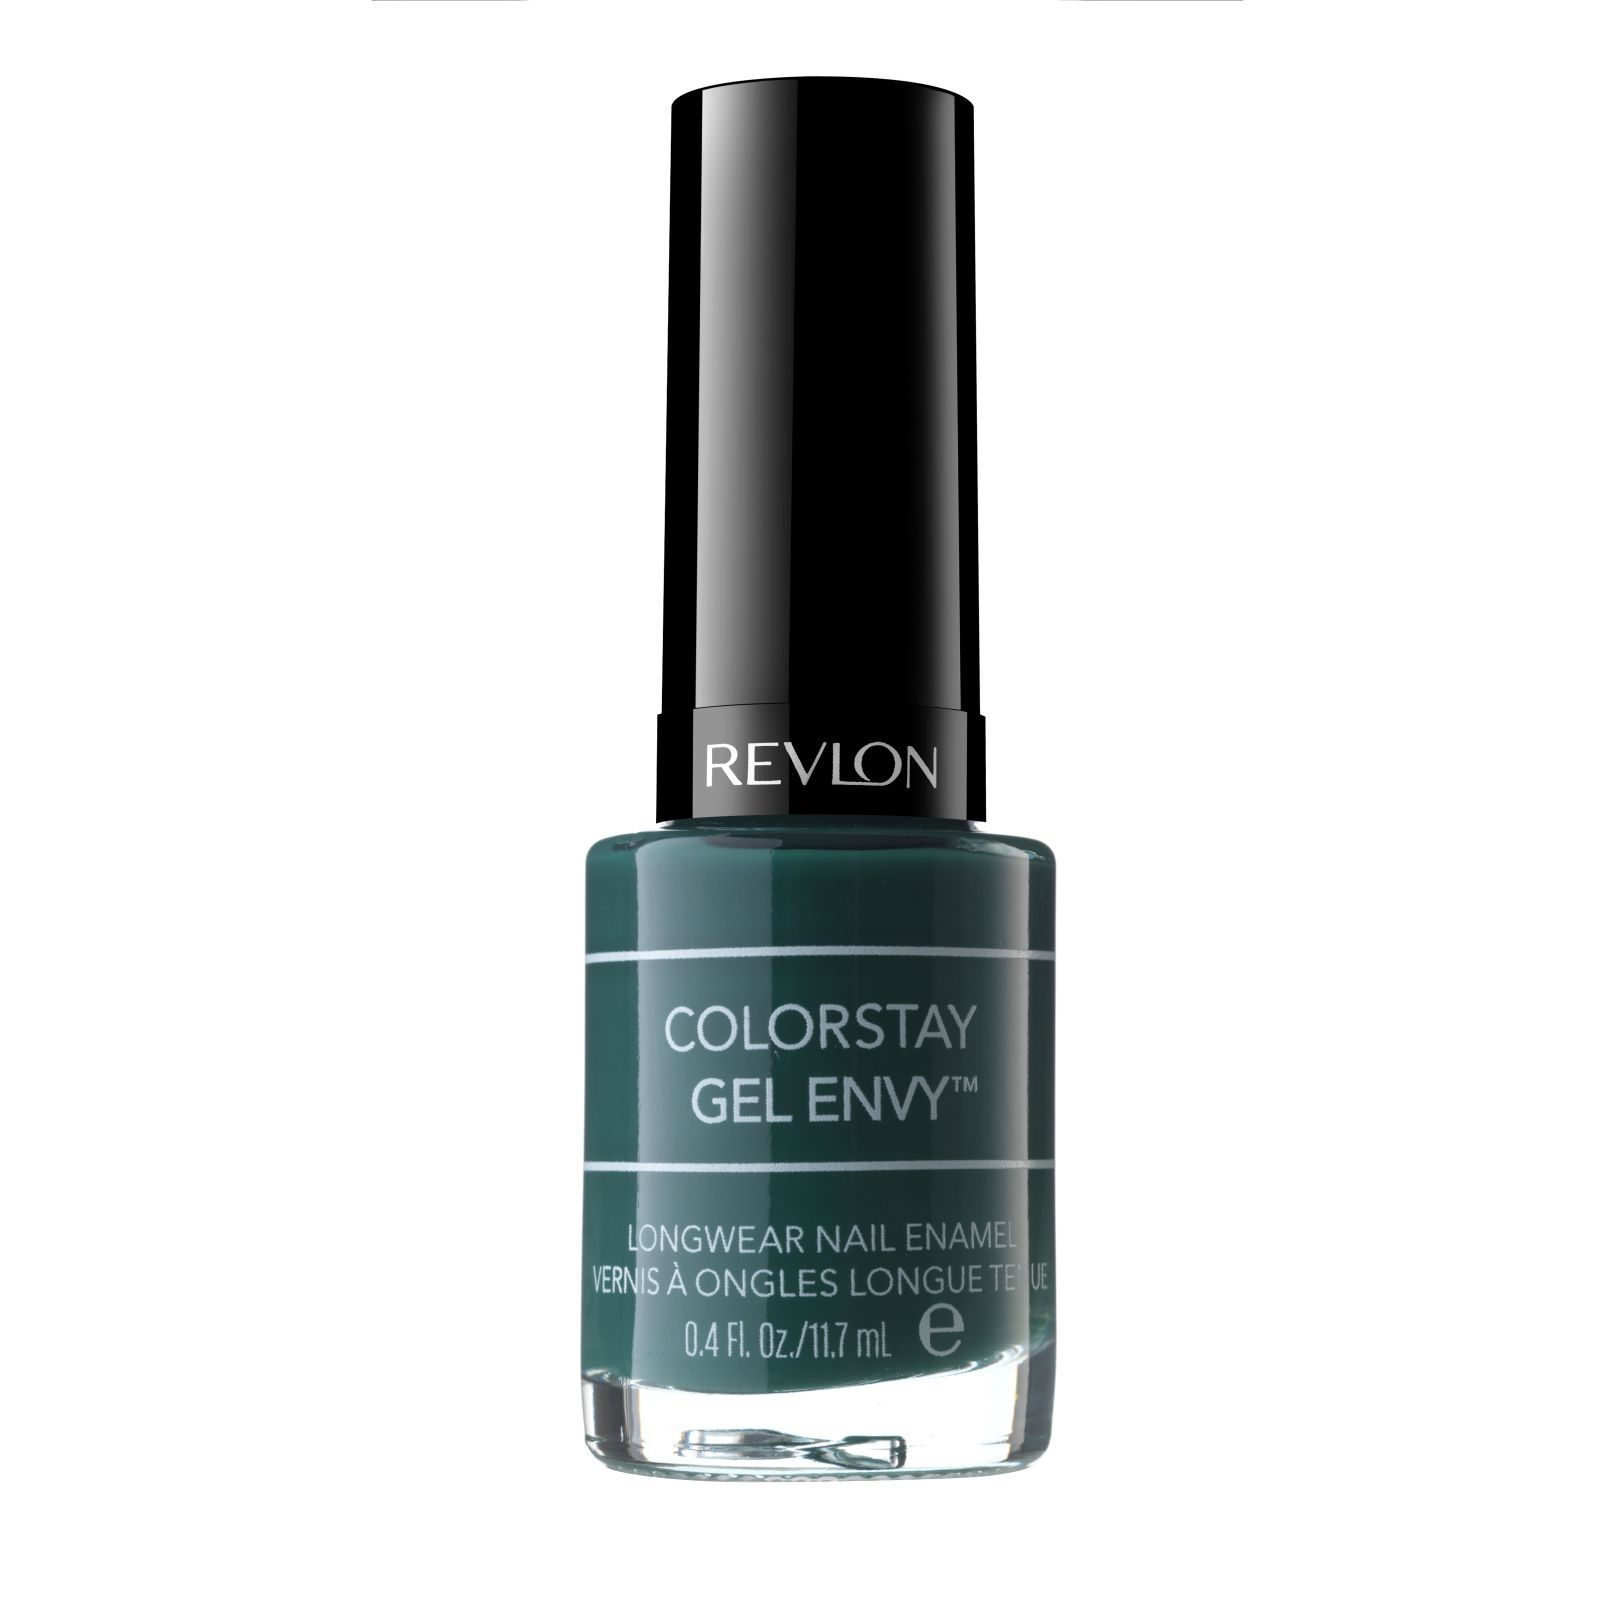 revlon colorstay gel envy nagellack gr n brandalley. Black Bedroom Furniture Sets. Home Design Ideas